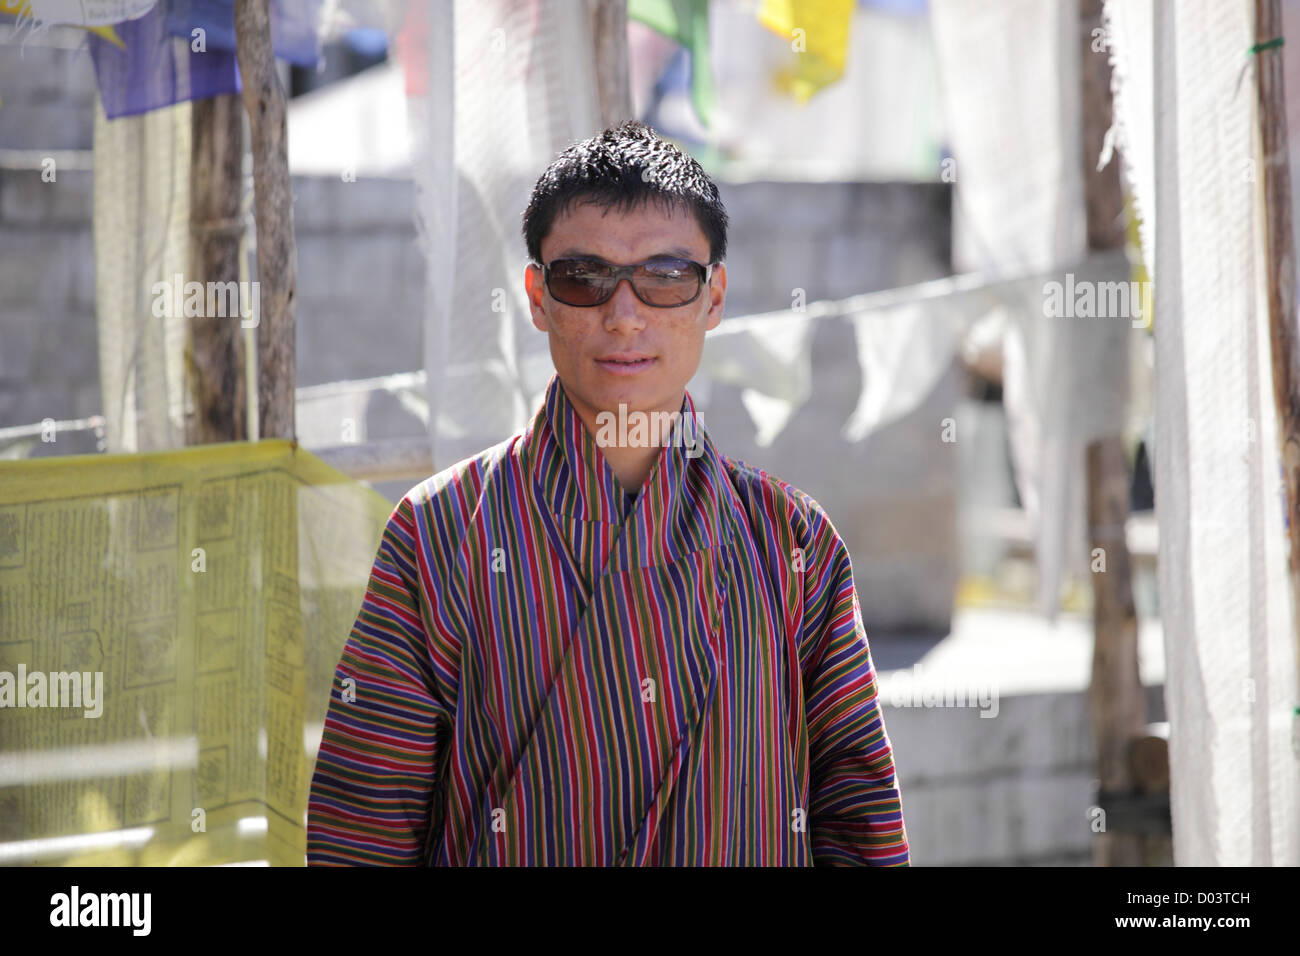 An handsome adult monk with this sunglasses posing for the camera. - Stock Image